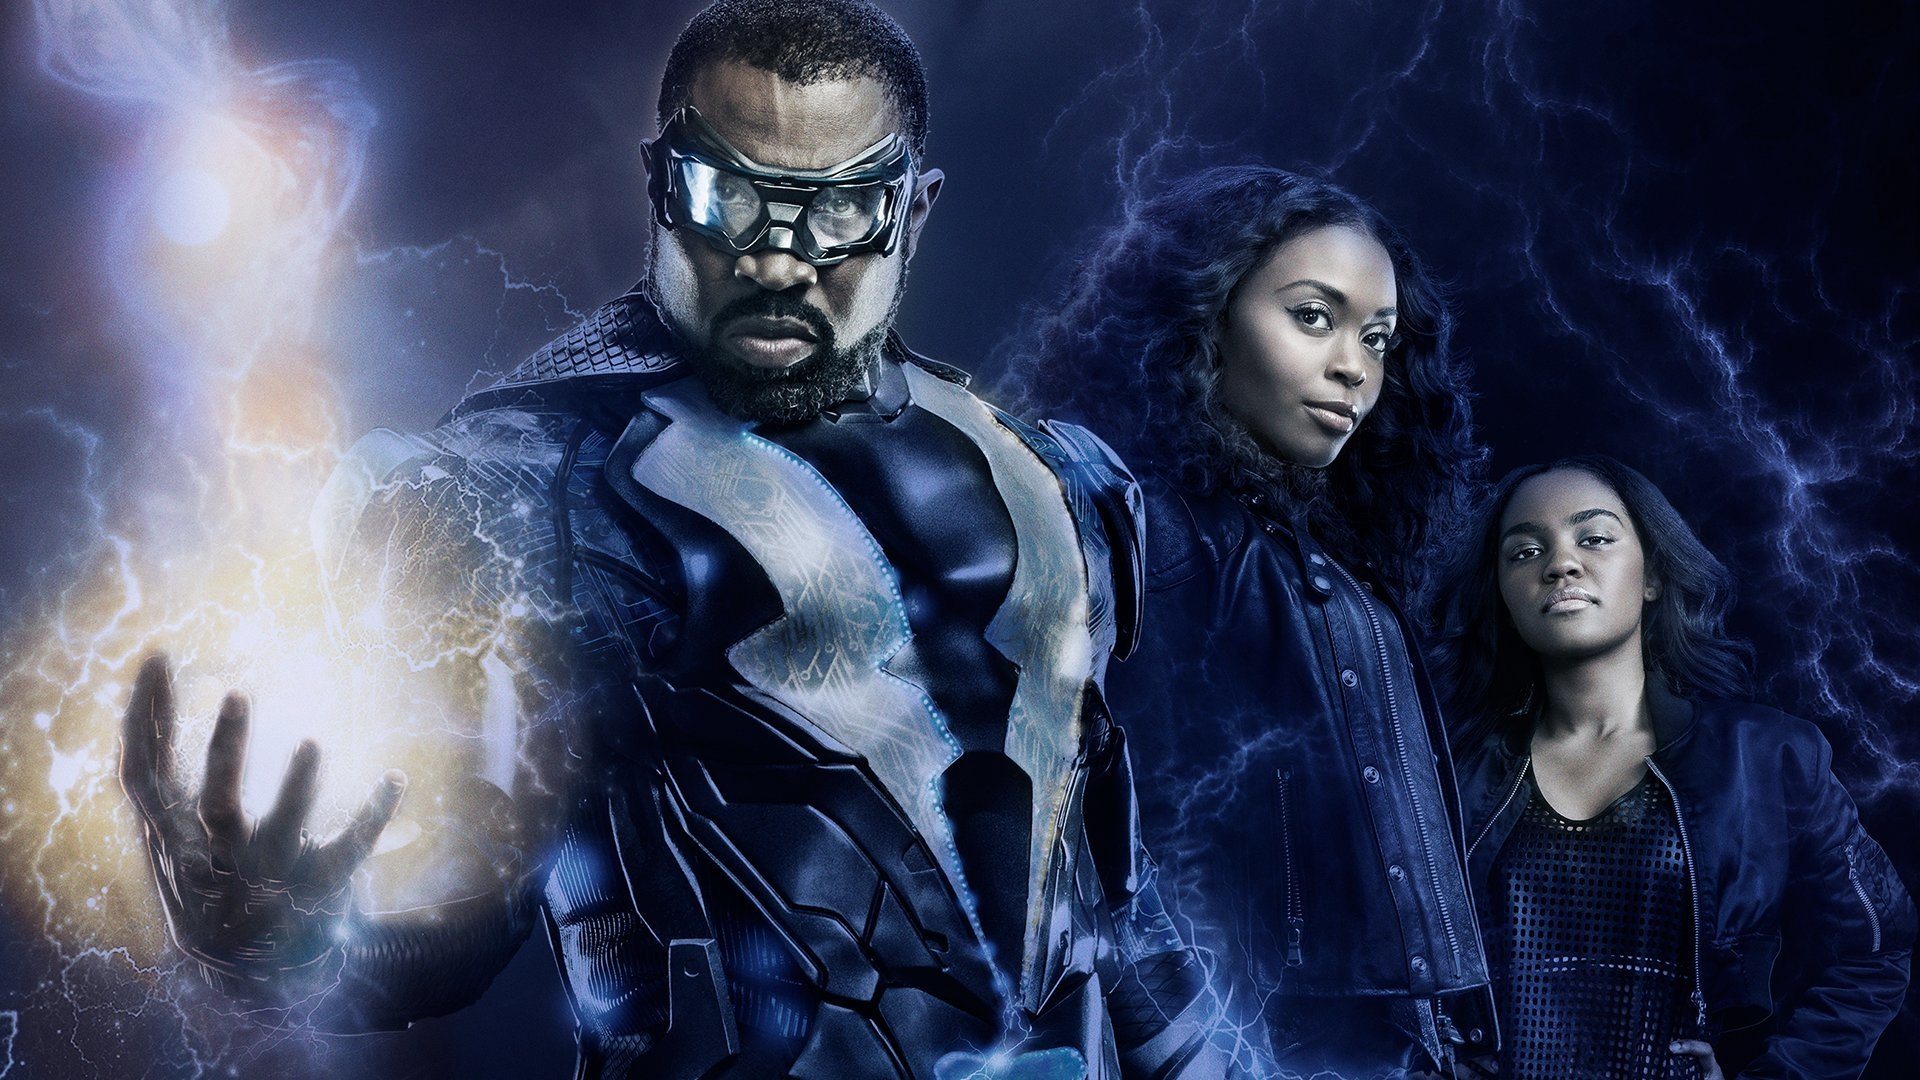 Black Lightning Hd Wallpaper Background Image 1920x1080 Id